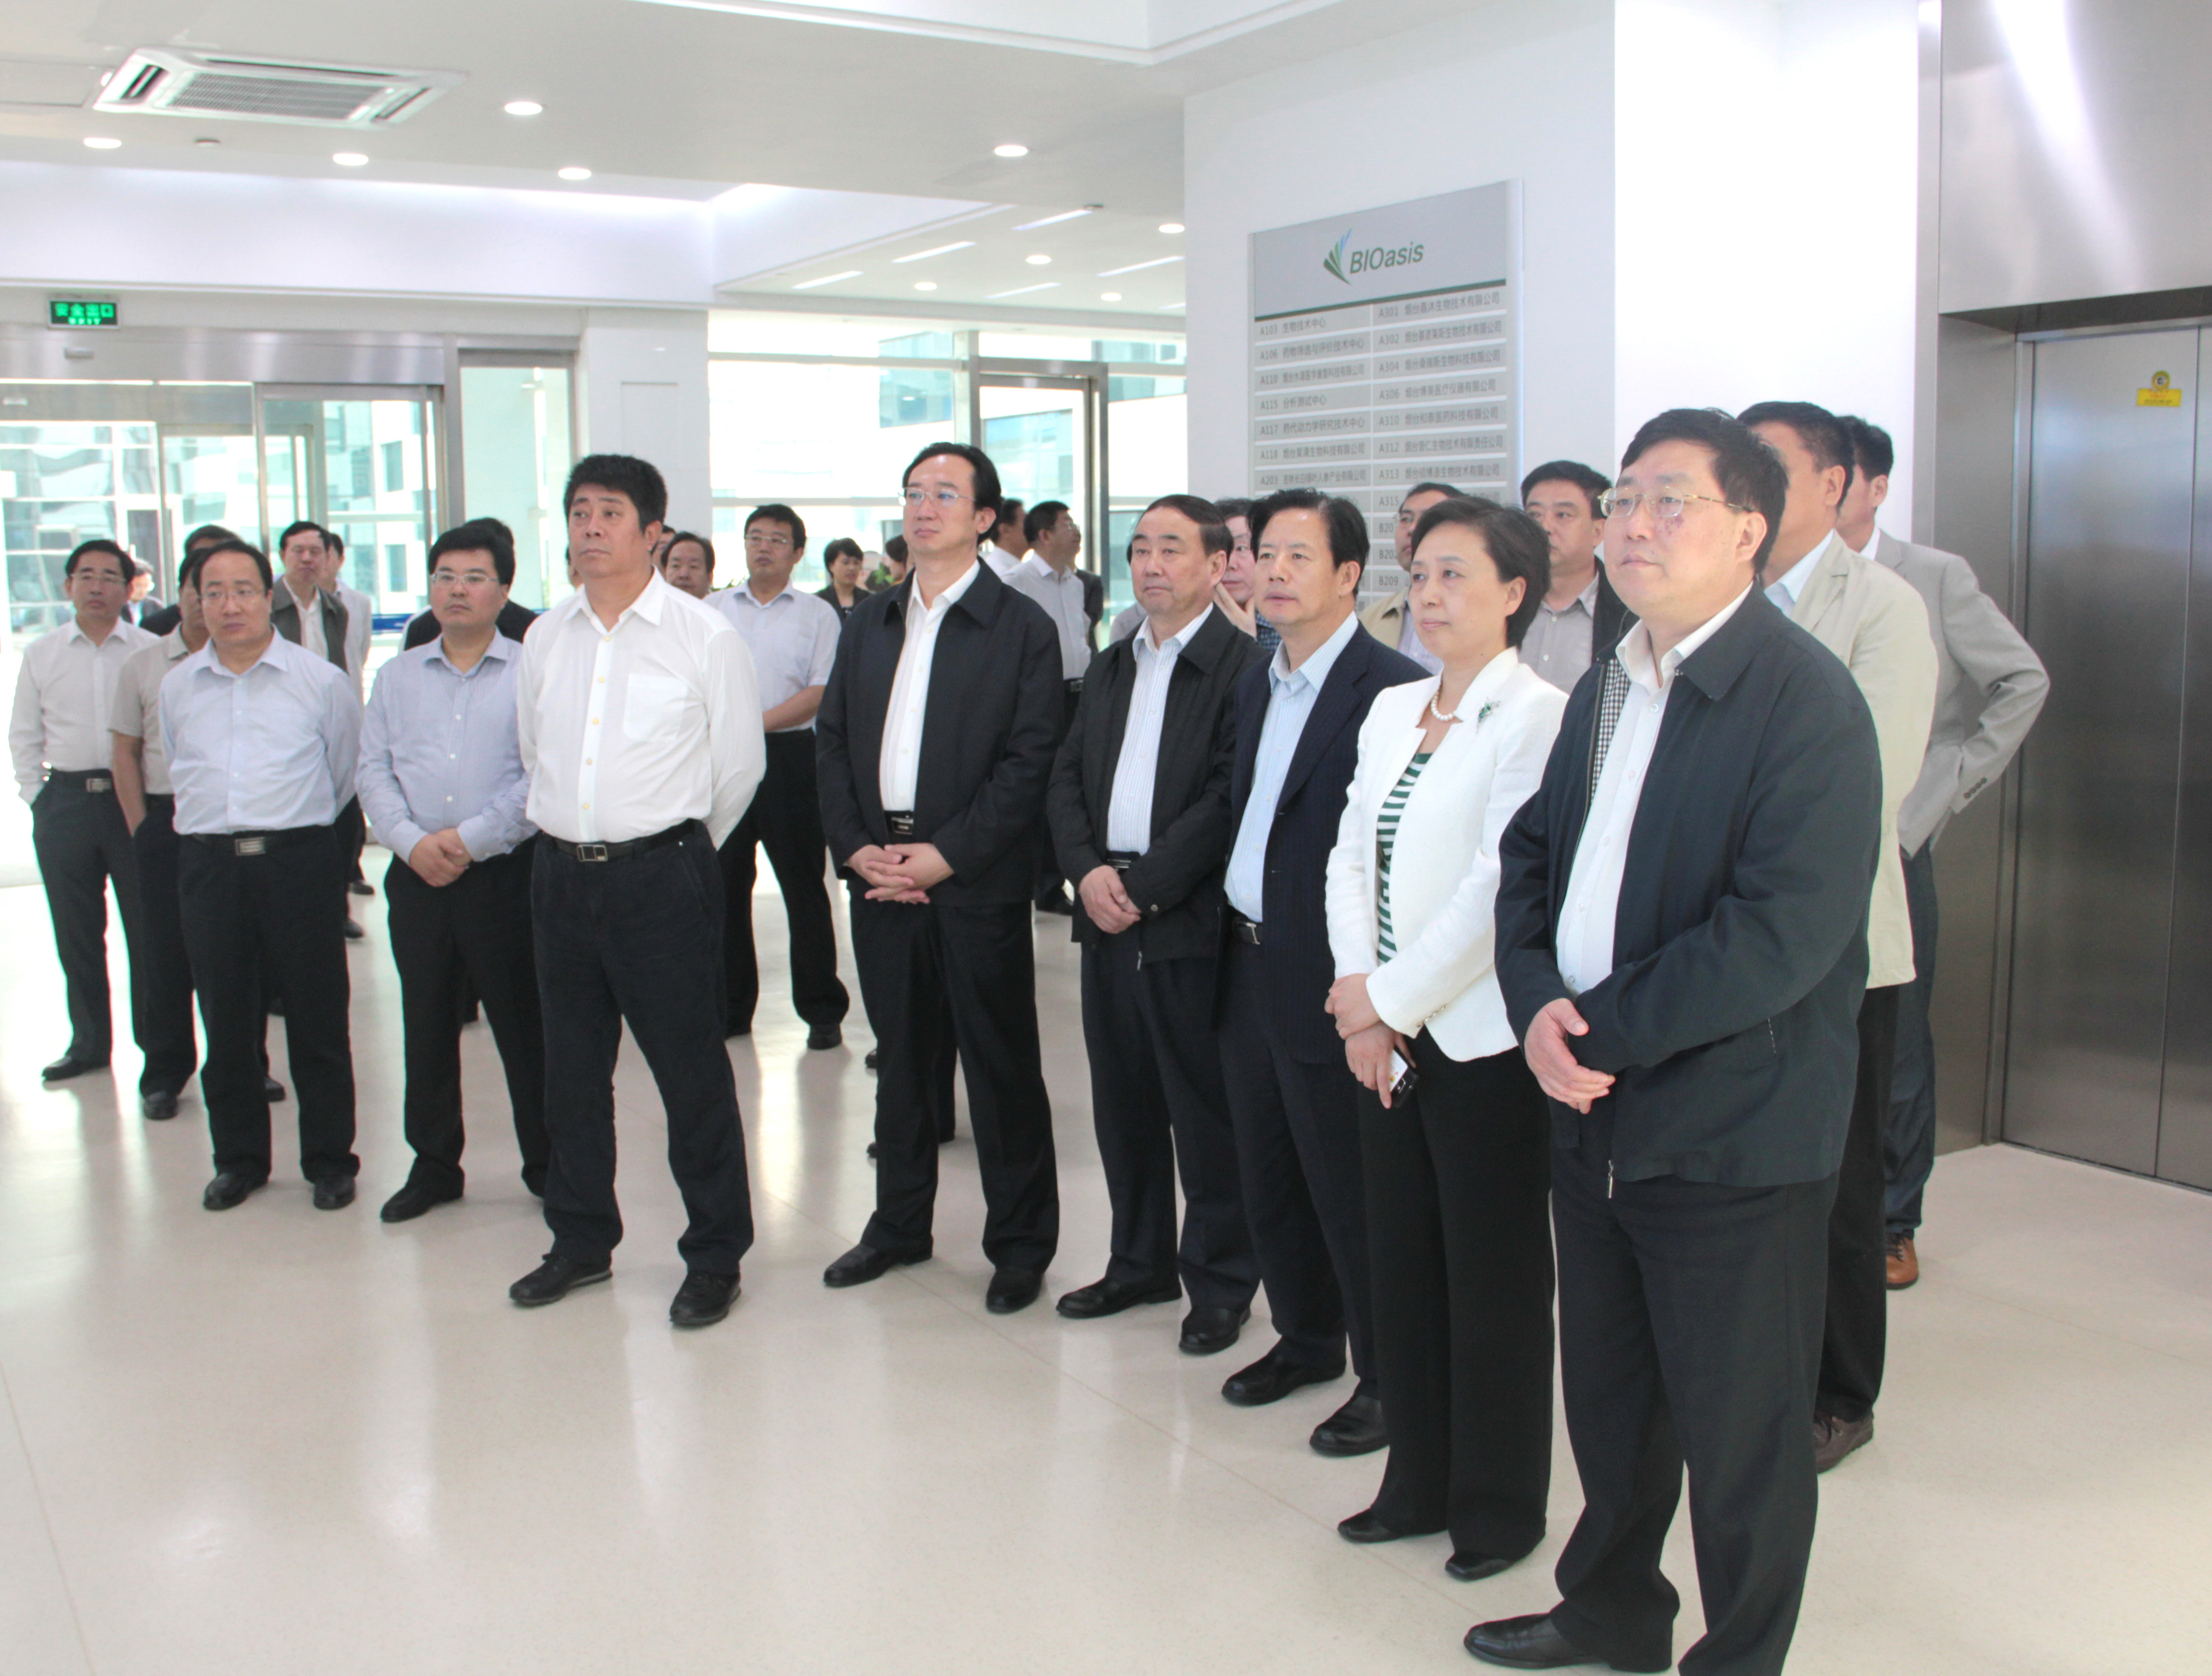 Cangzhou Municipal Administration Delegation Visited BIOasis